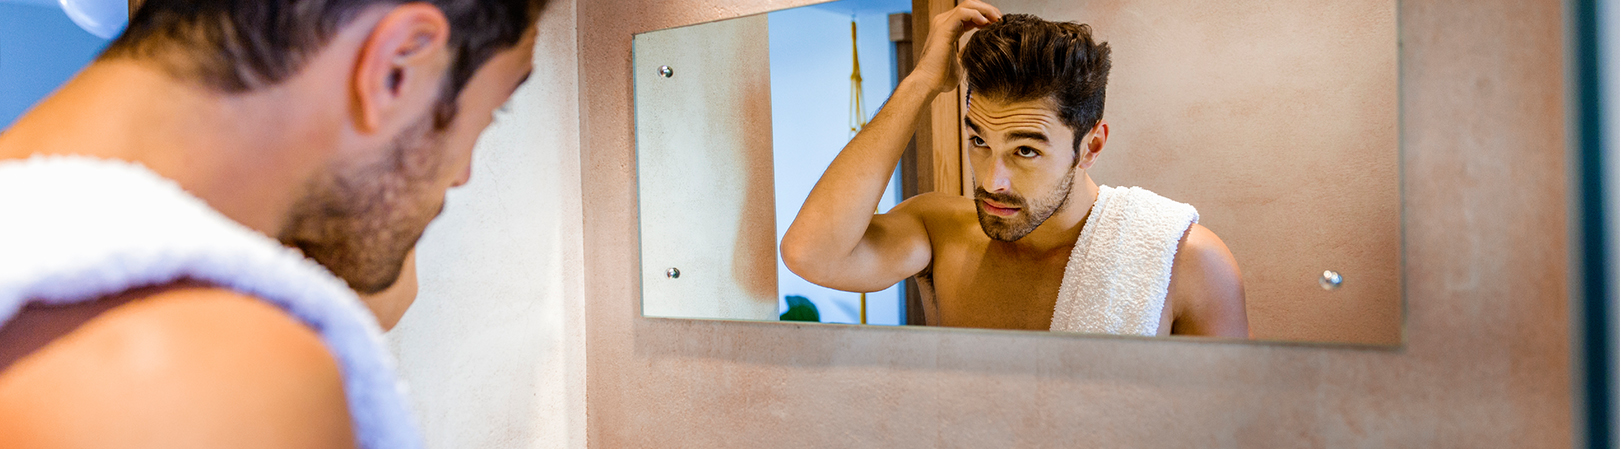 Facts About Hair Loss